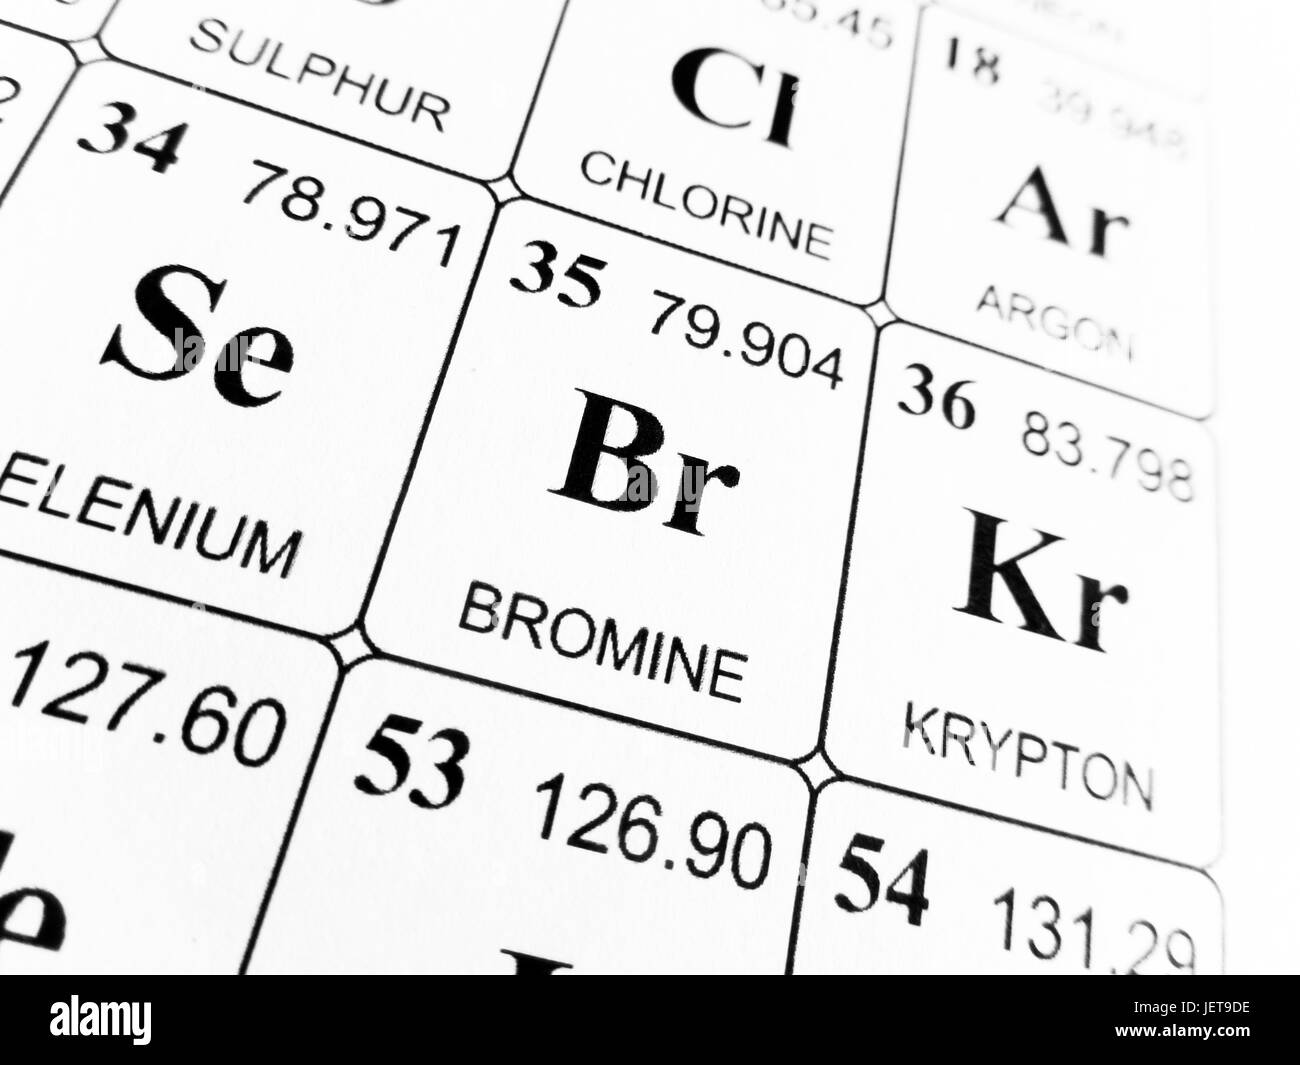 Bromine on the periodic table of the elements stock photo royalty bromine on the periodic table of the elements gamestrikefo Choice Image